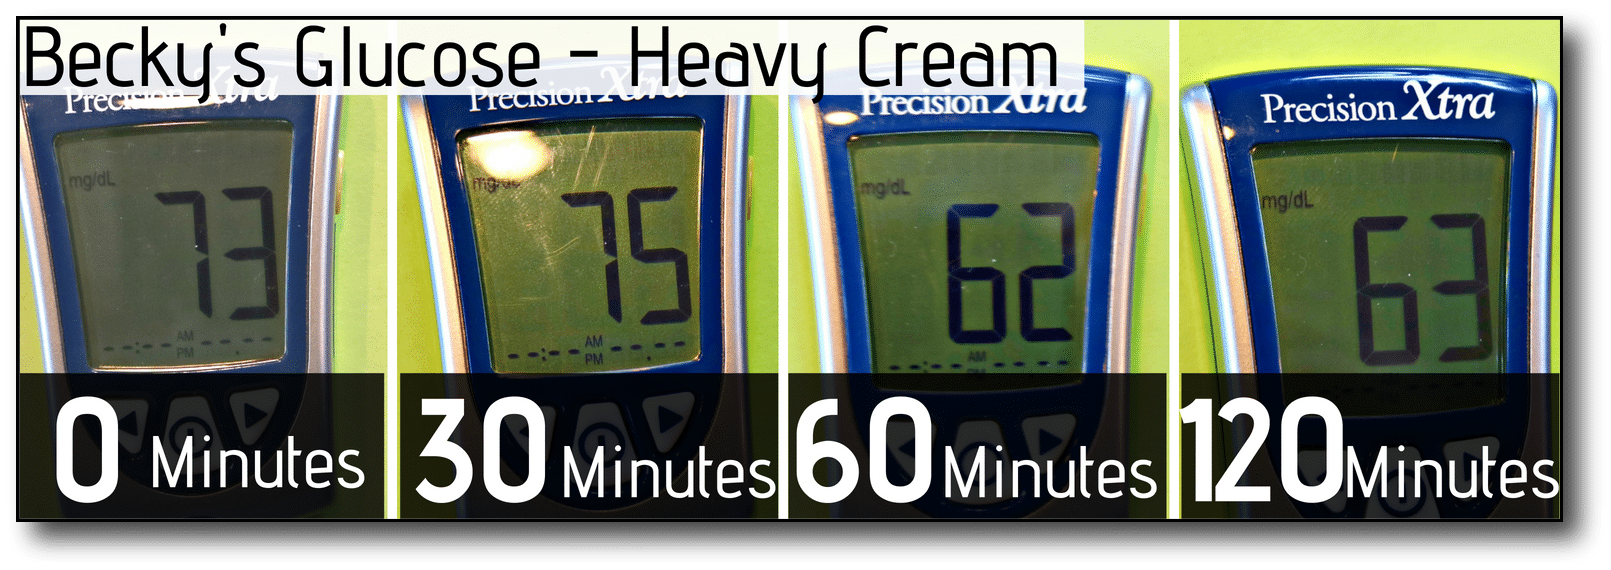 coffee and intermittent fasting-becky glucose heavy cream